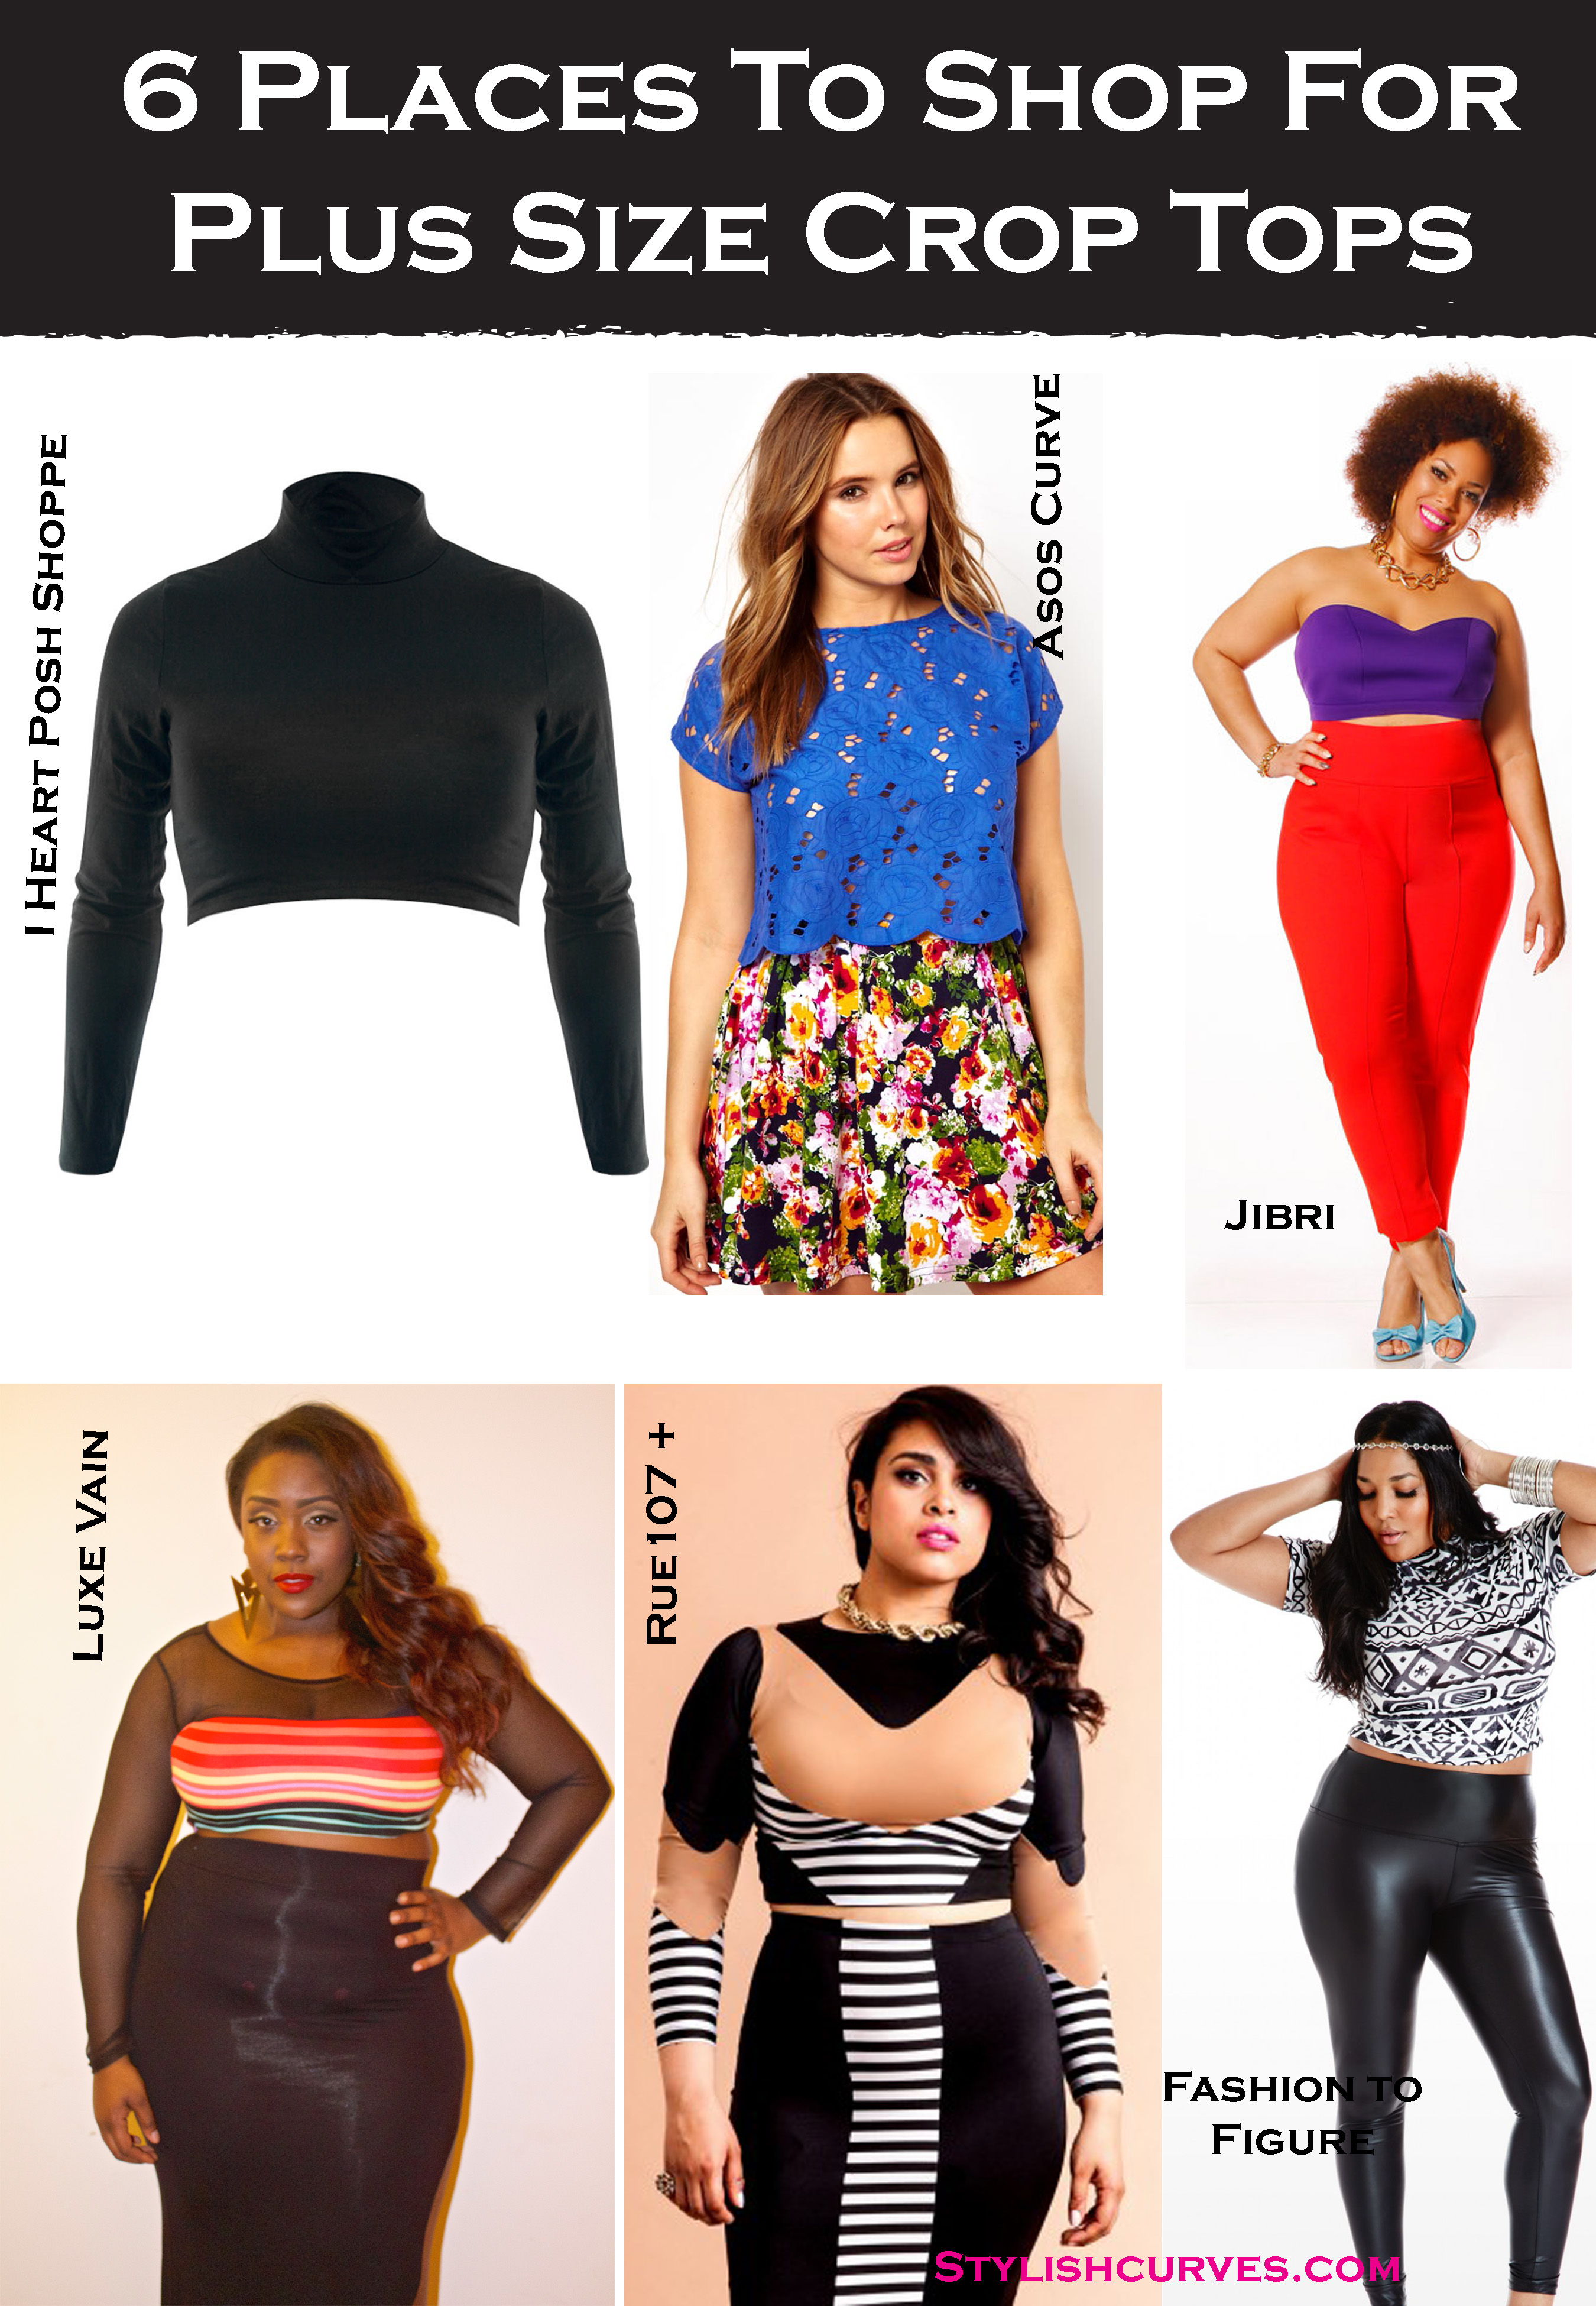 ask sc: 6 places to shop for plus size crop tops   stylish curves